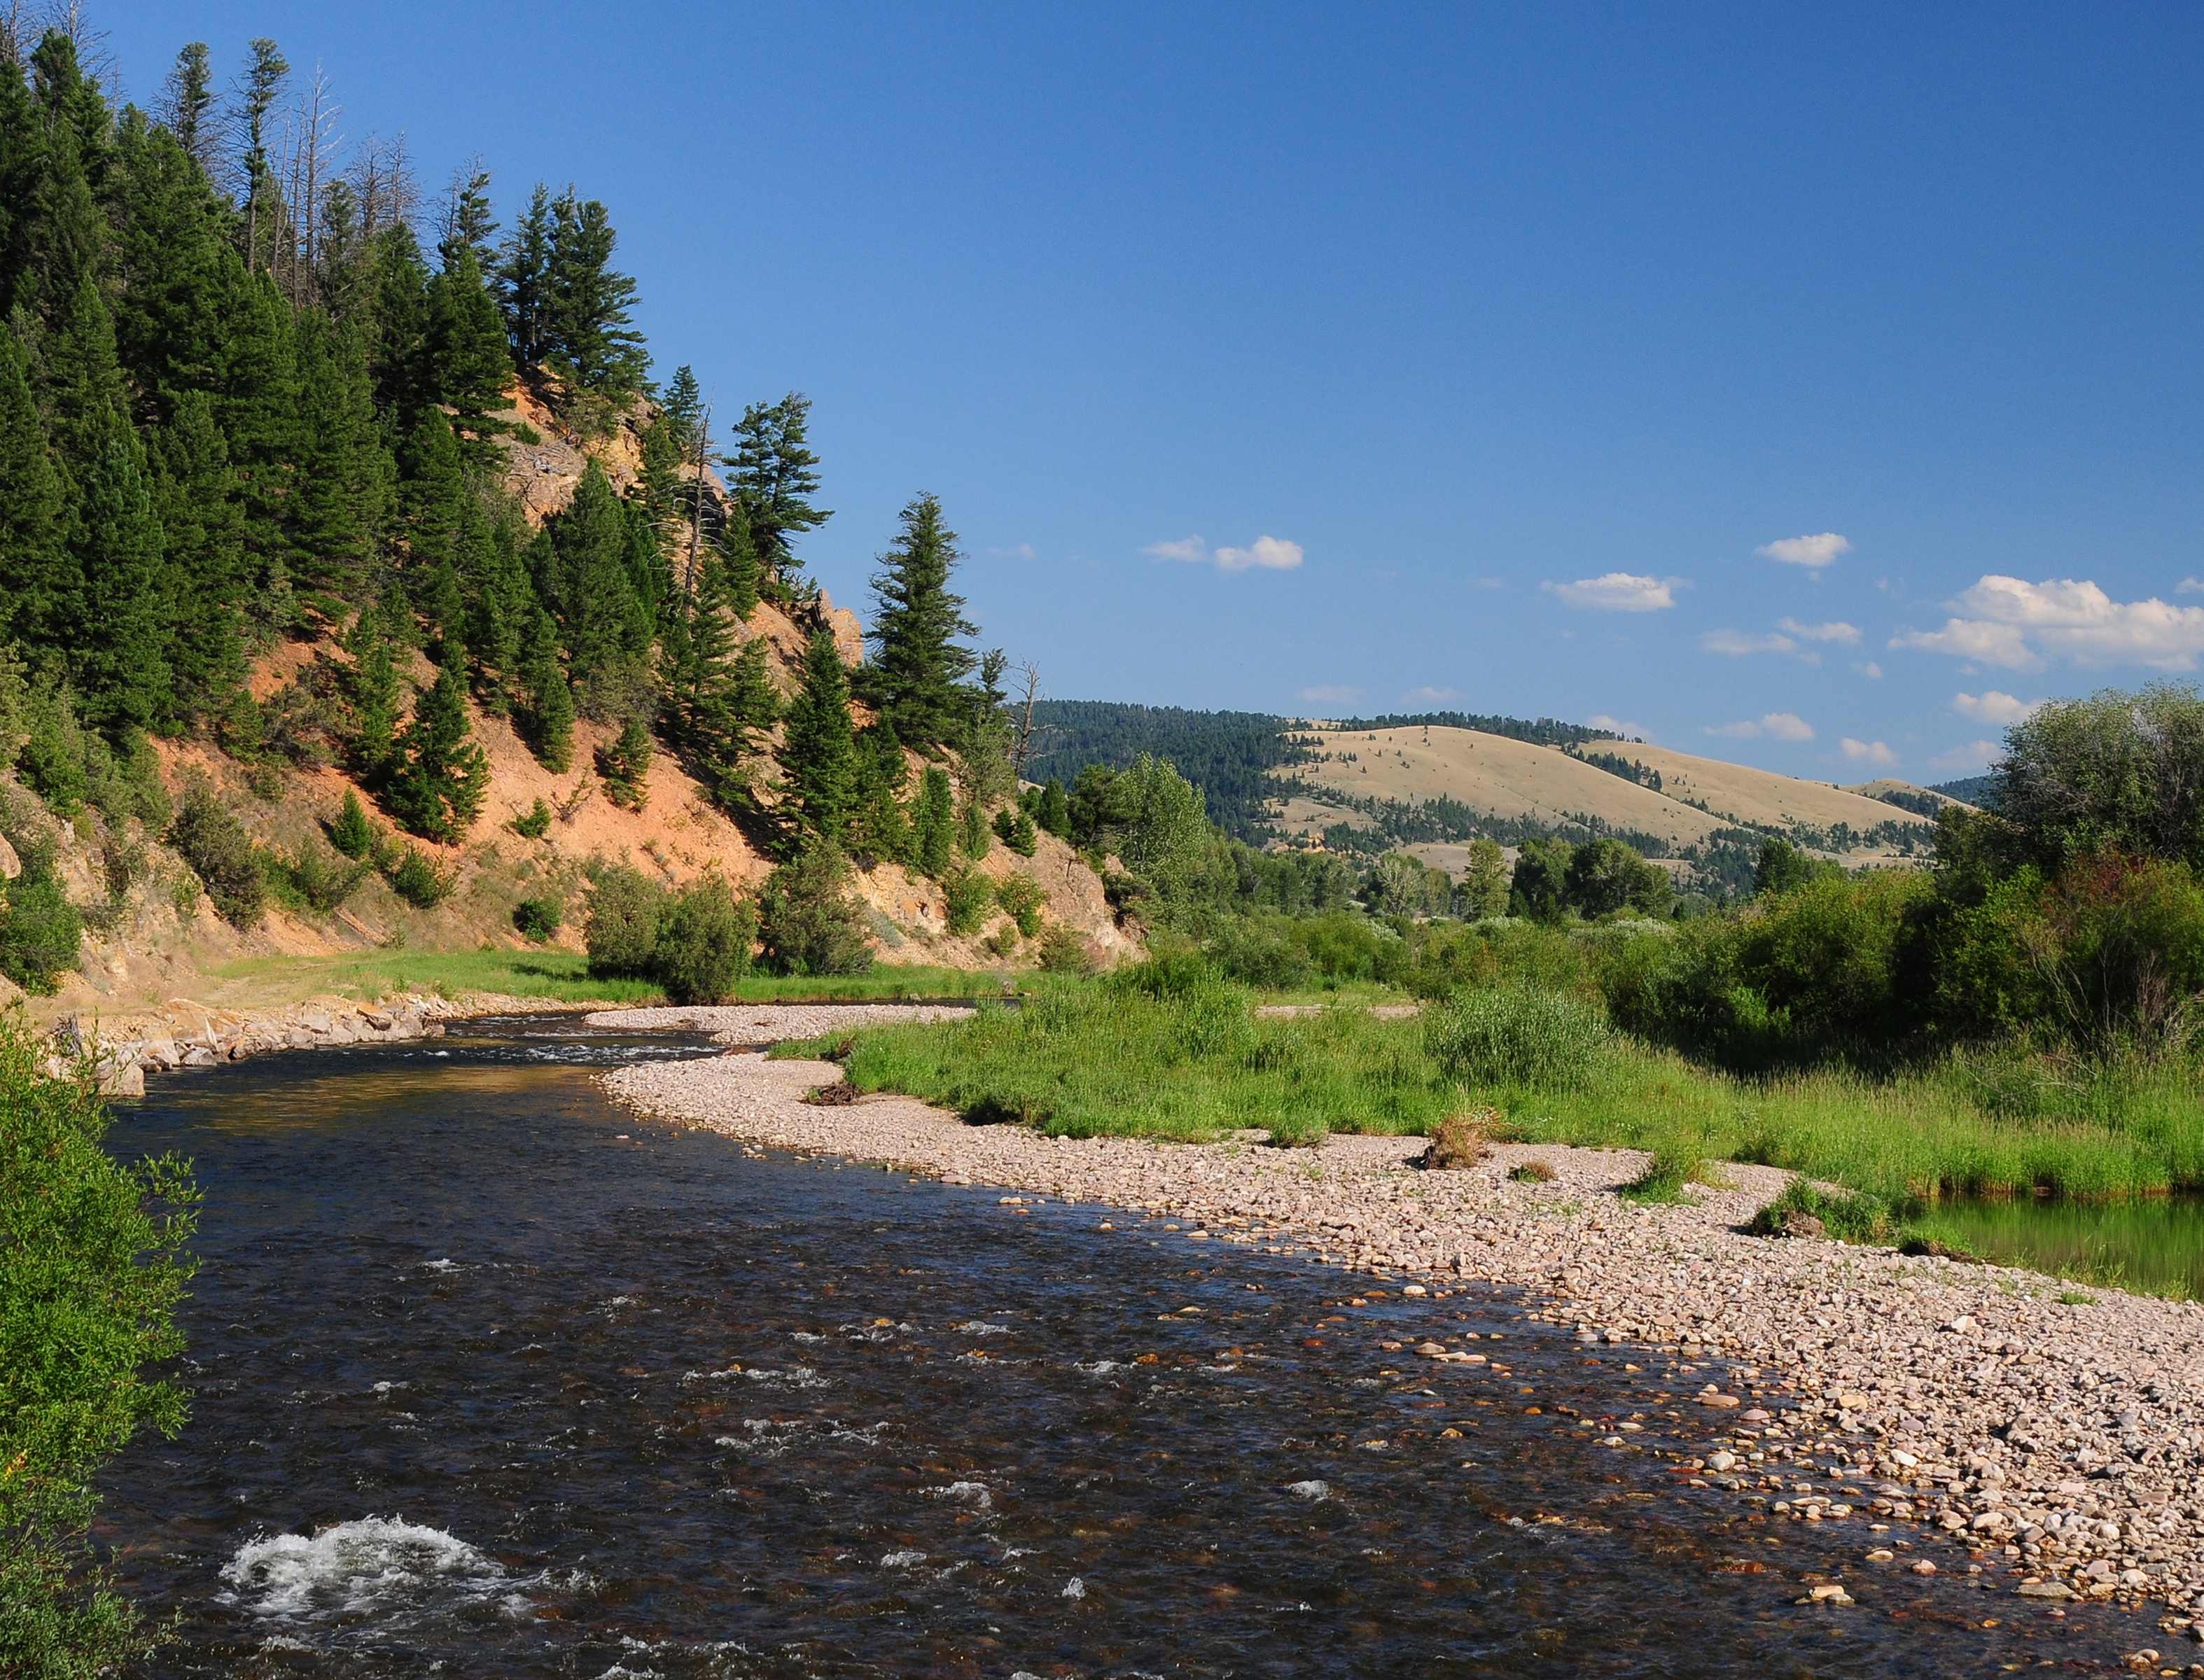 From Philipsburg to Clinton: Riding Rock Creek Road